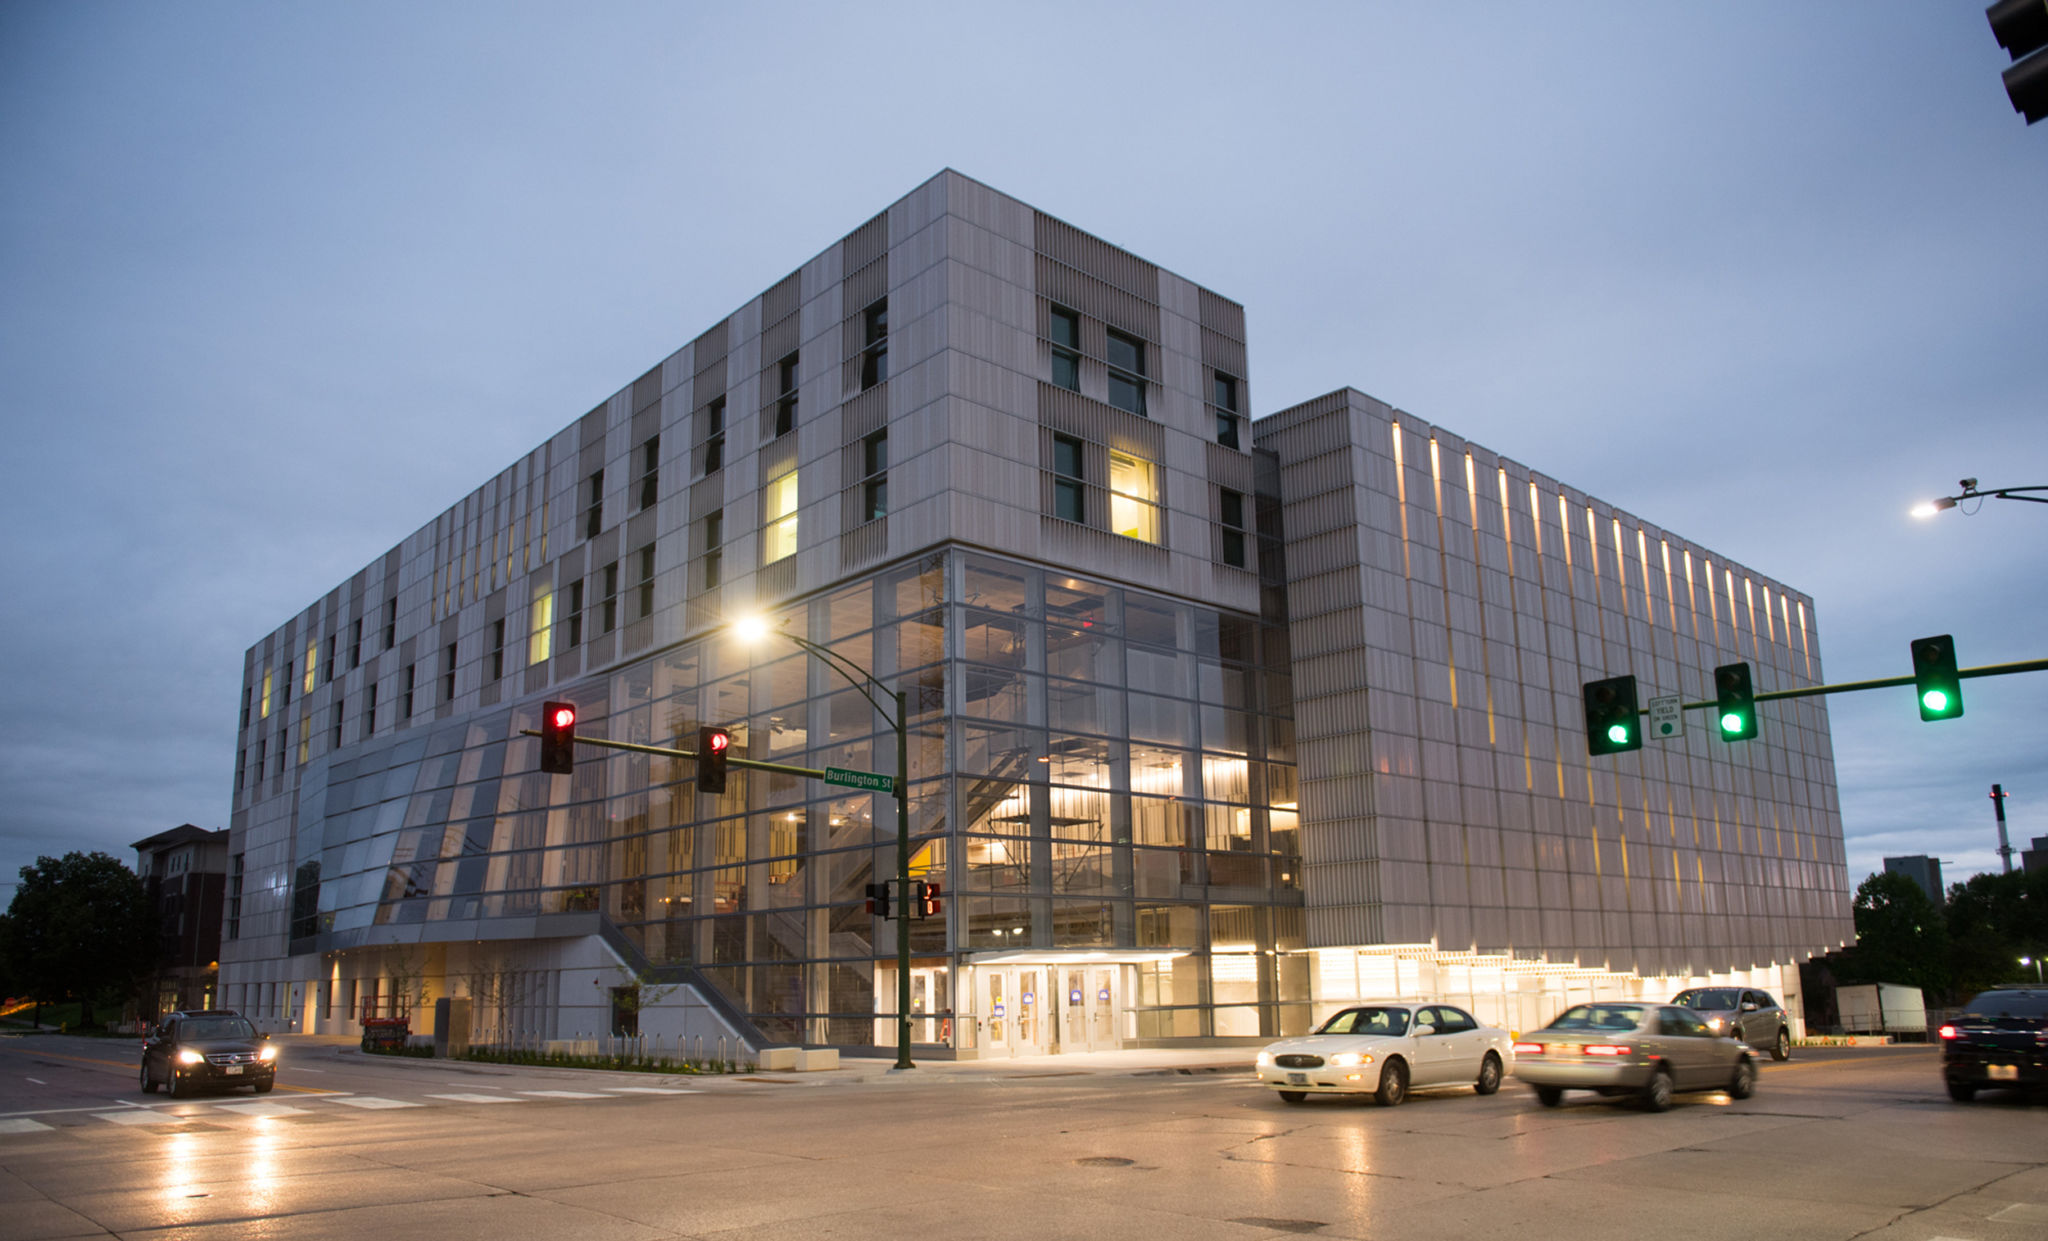 The University of Iowa's (UI's) new music facility implemented a variety of glazing solutions to overcome acoustic challenges and provide an ideal space for music students and faculty to work. Photos © University of Iowa